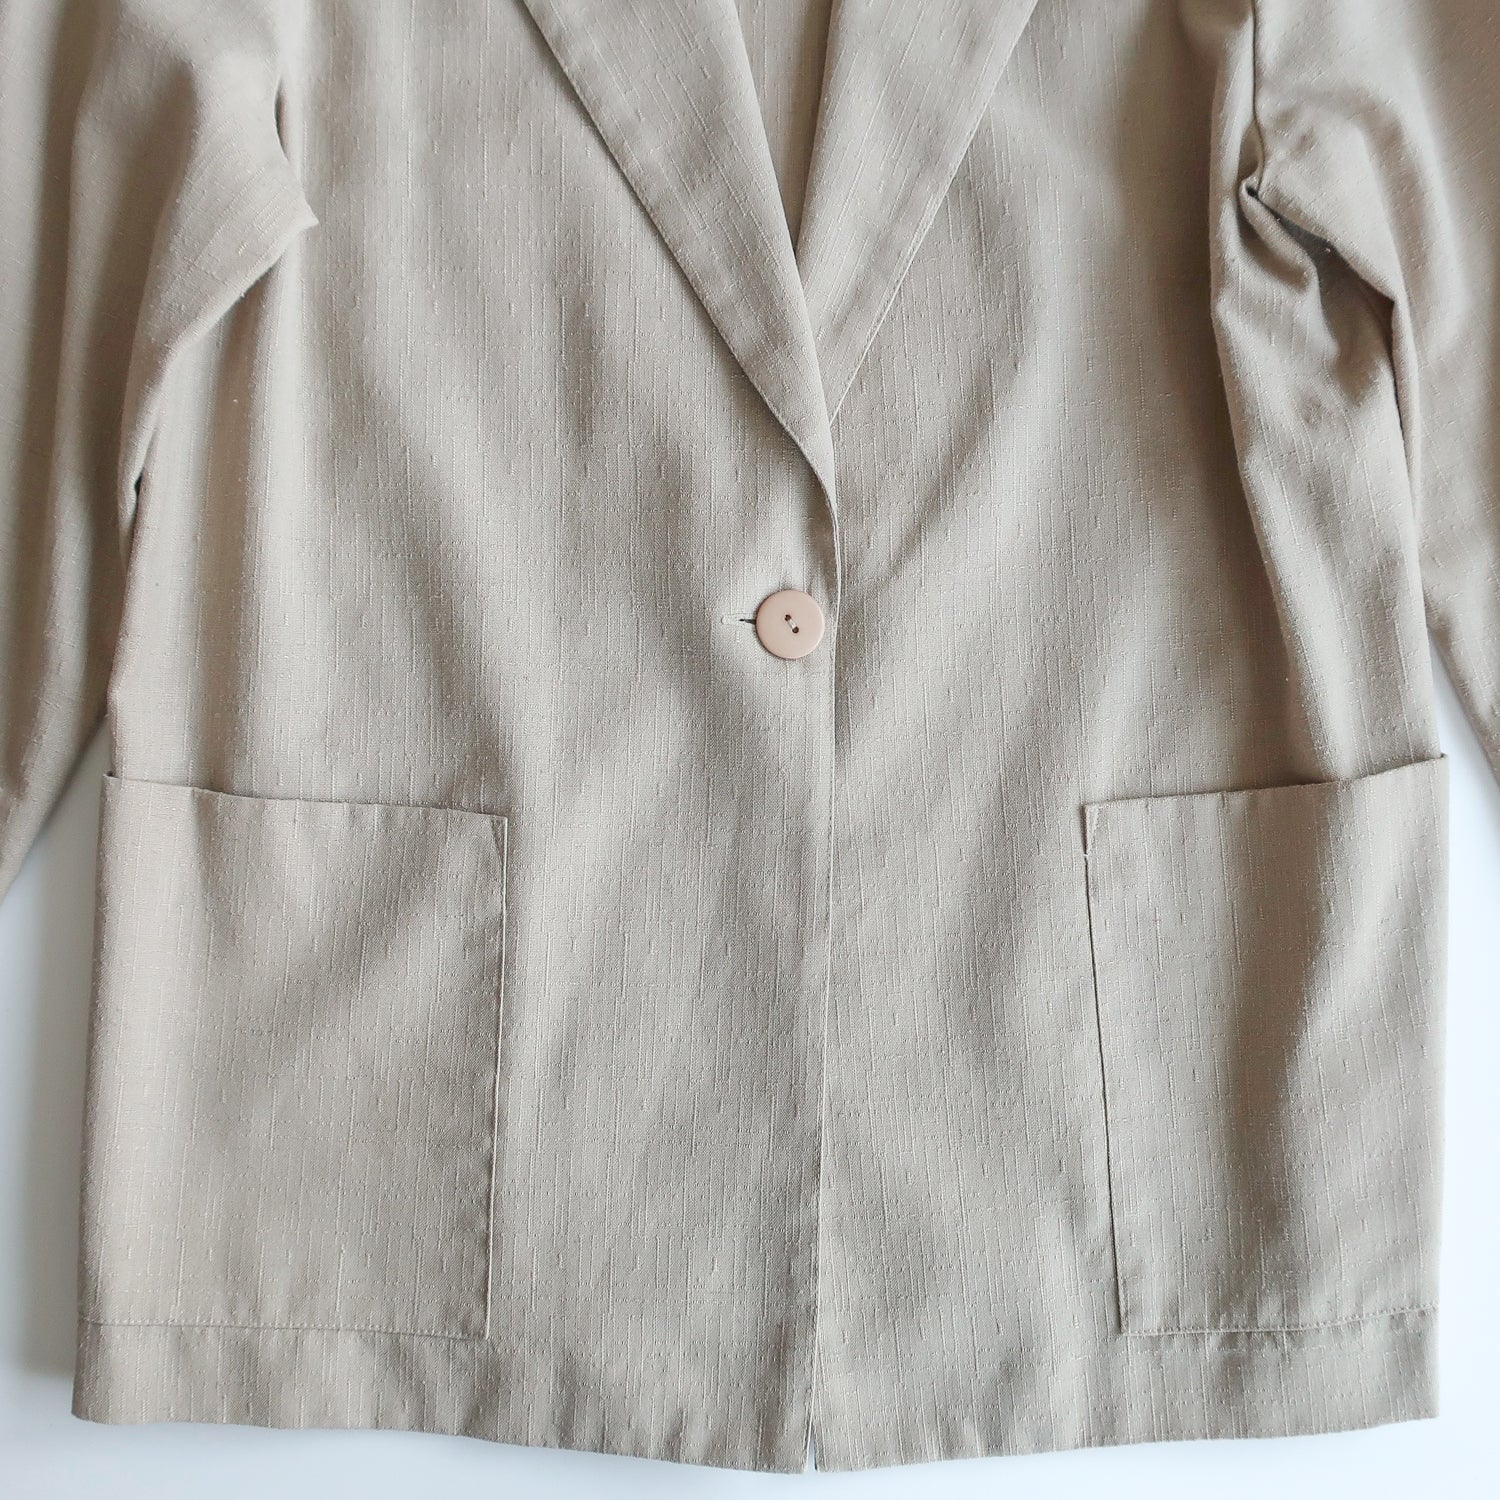 Second Room Vintage Clothing. Vintage beige linen blend blazer, unlined, with one button for closure, two front pockets, and shoulder pads (that could easily be removed if desired). Free North American shipping on all orders.